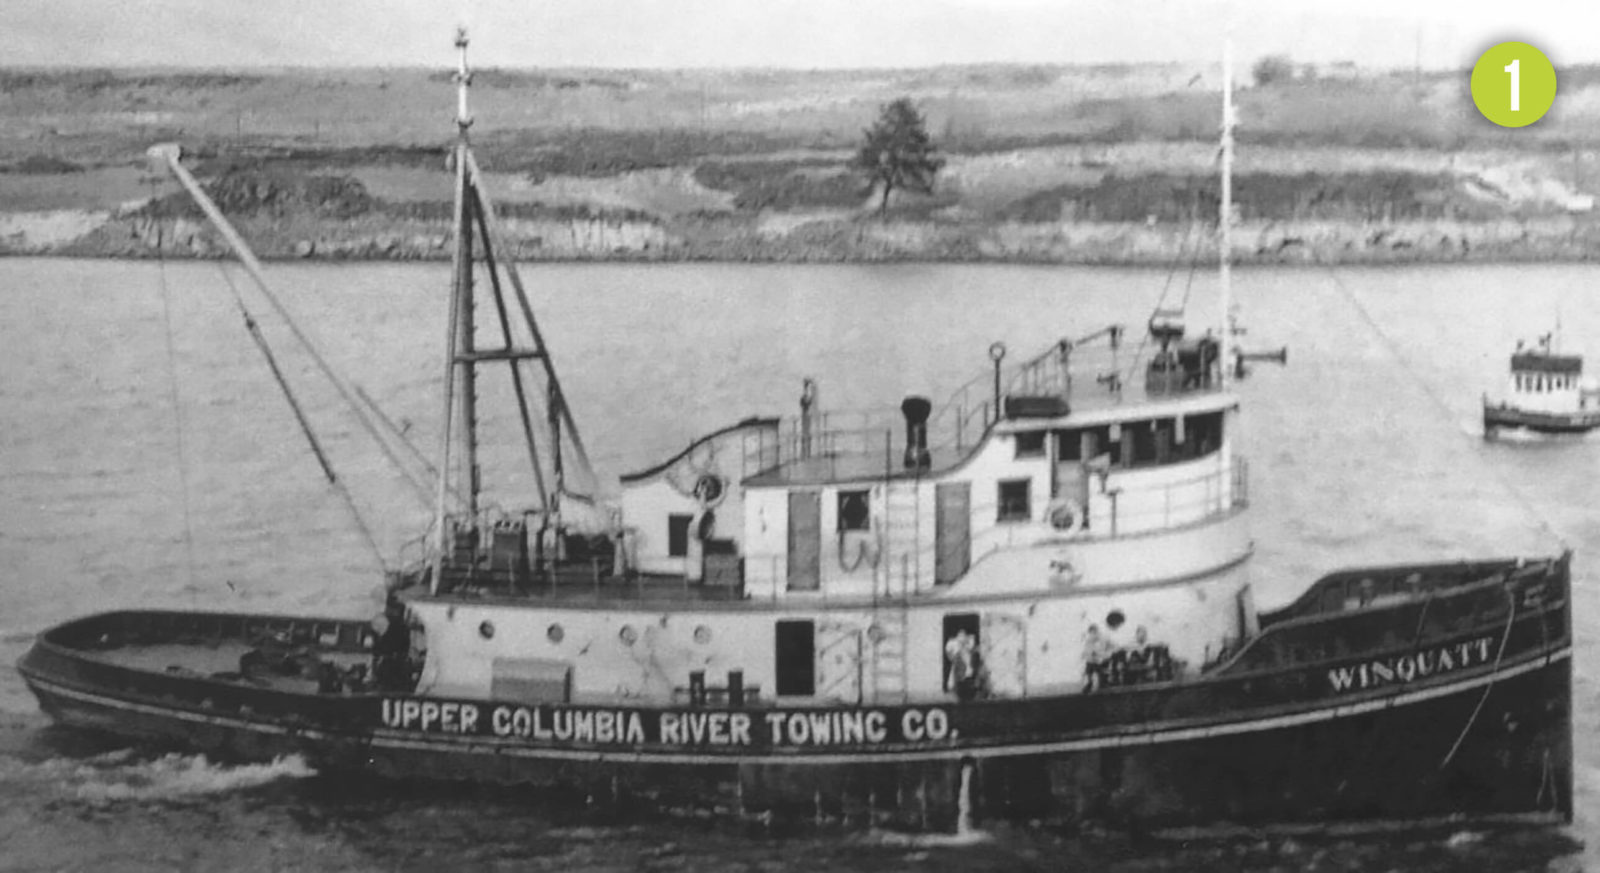 Winquat tugboat in the 1940s.